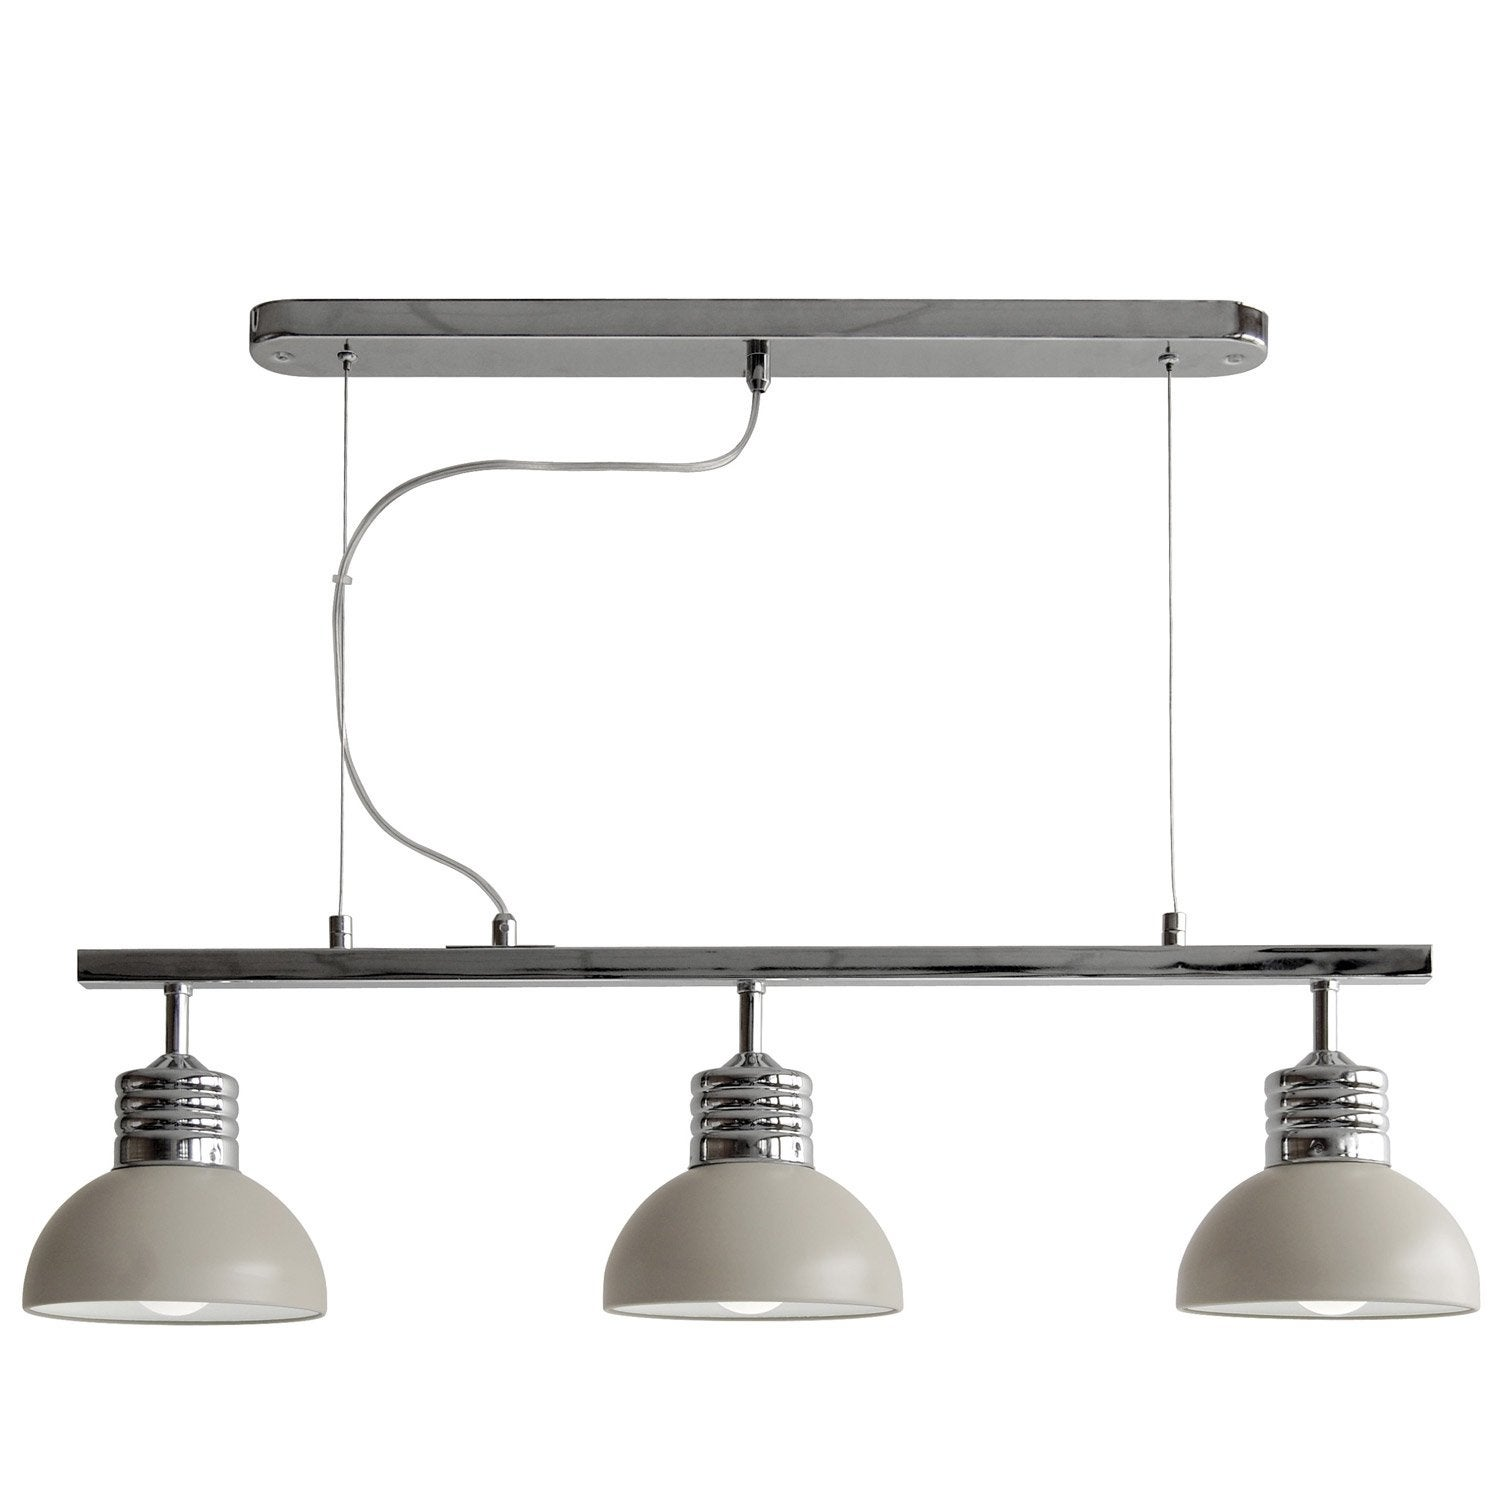 Suspension charlie seynave taupe 3x40 watts diam 80 cm leroy merlin - Suspension new york leroy merlin ...